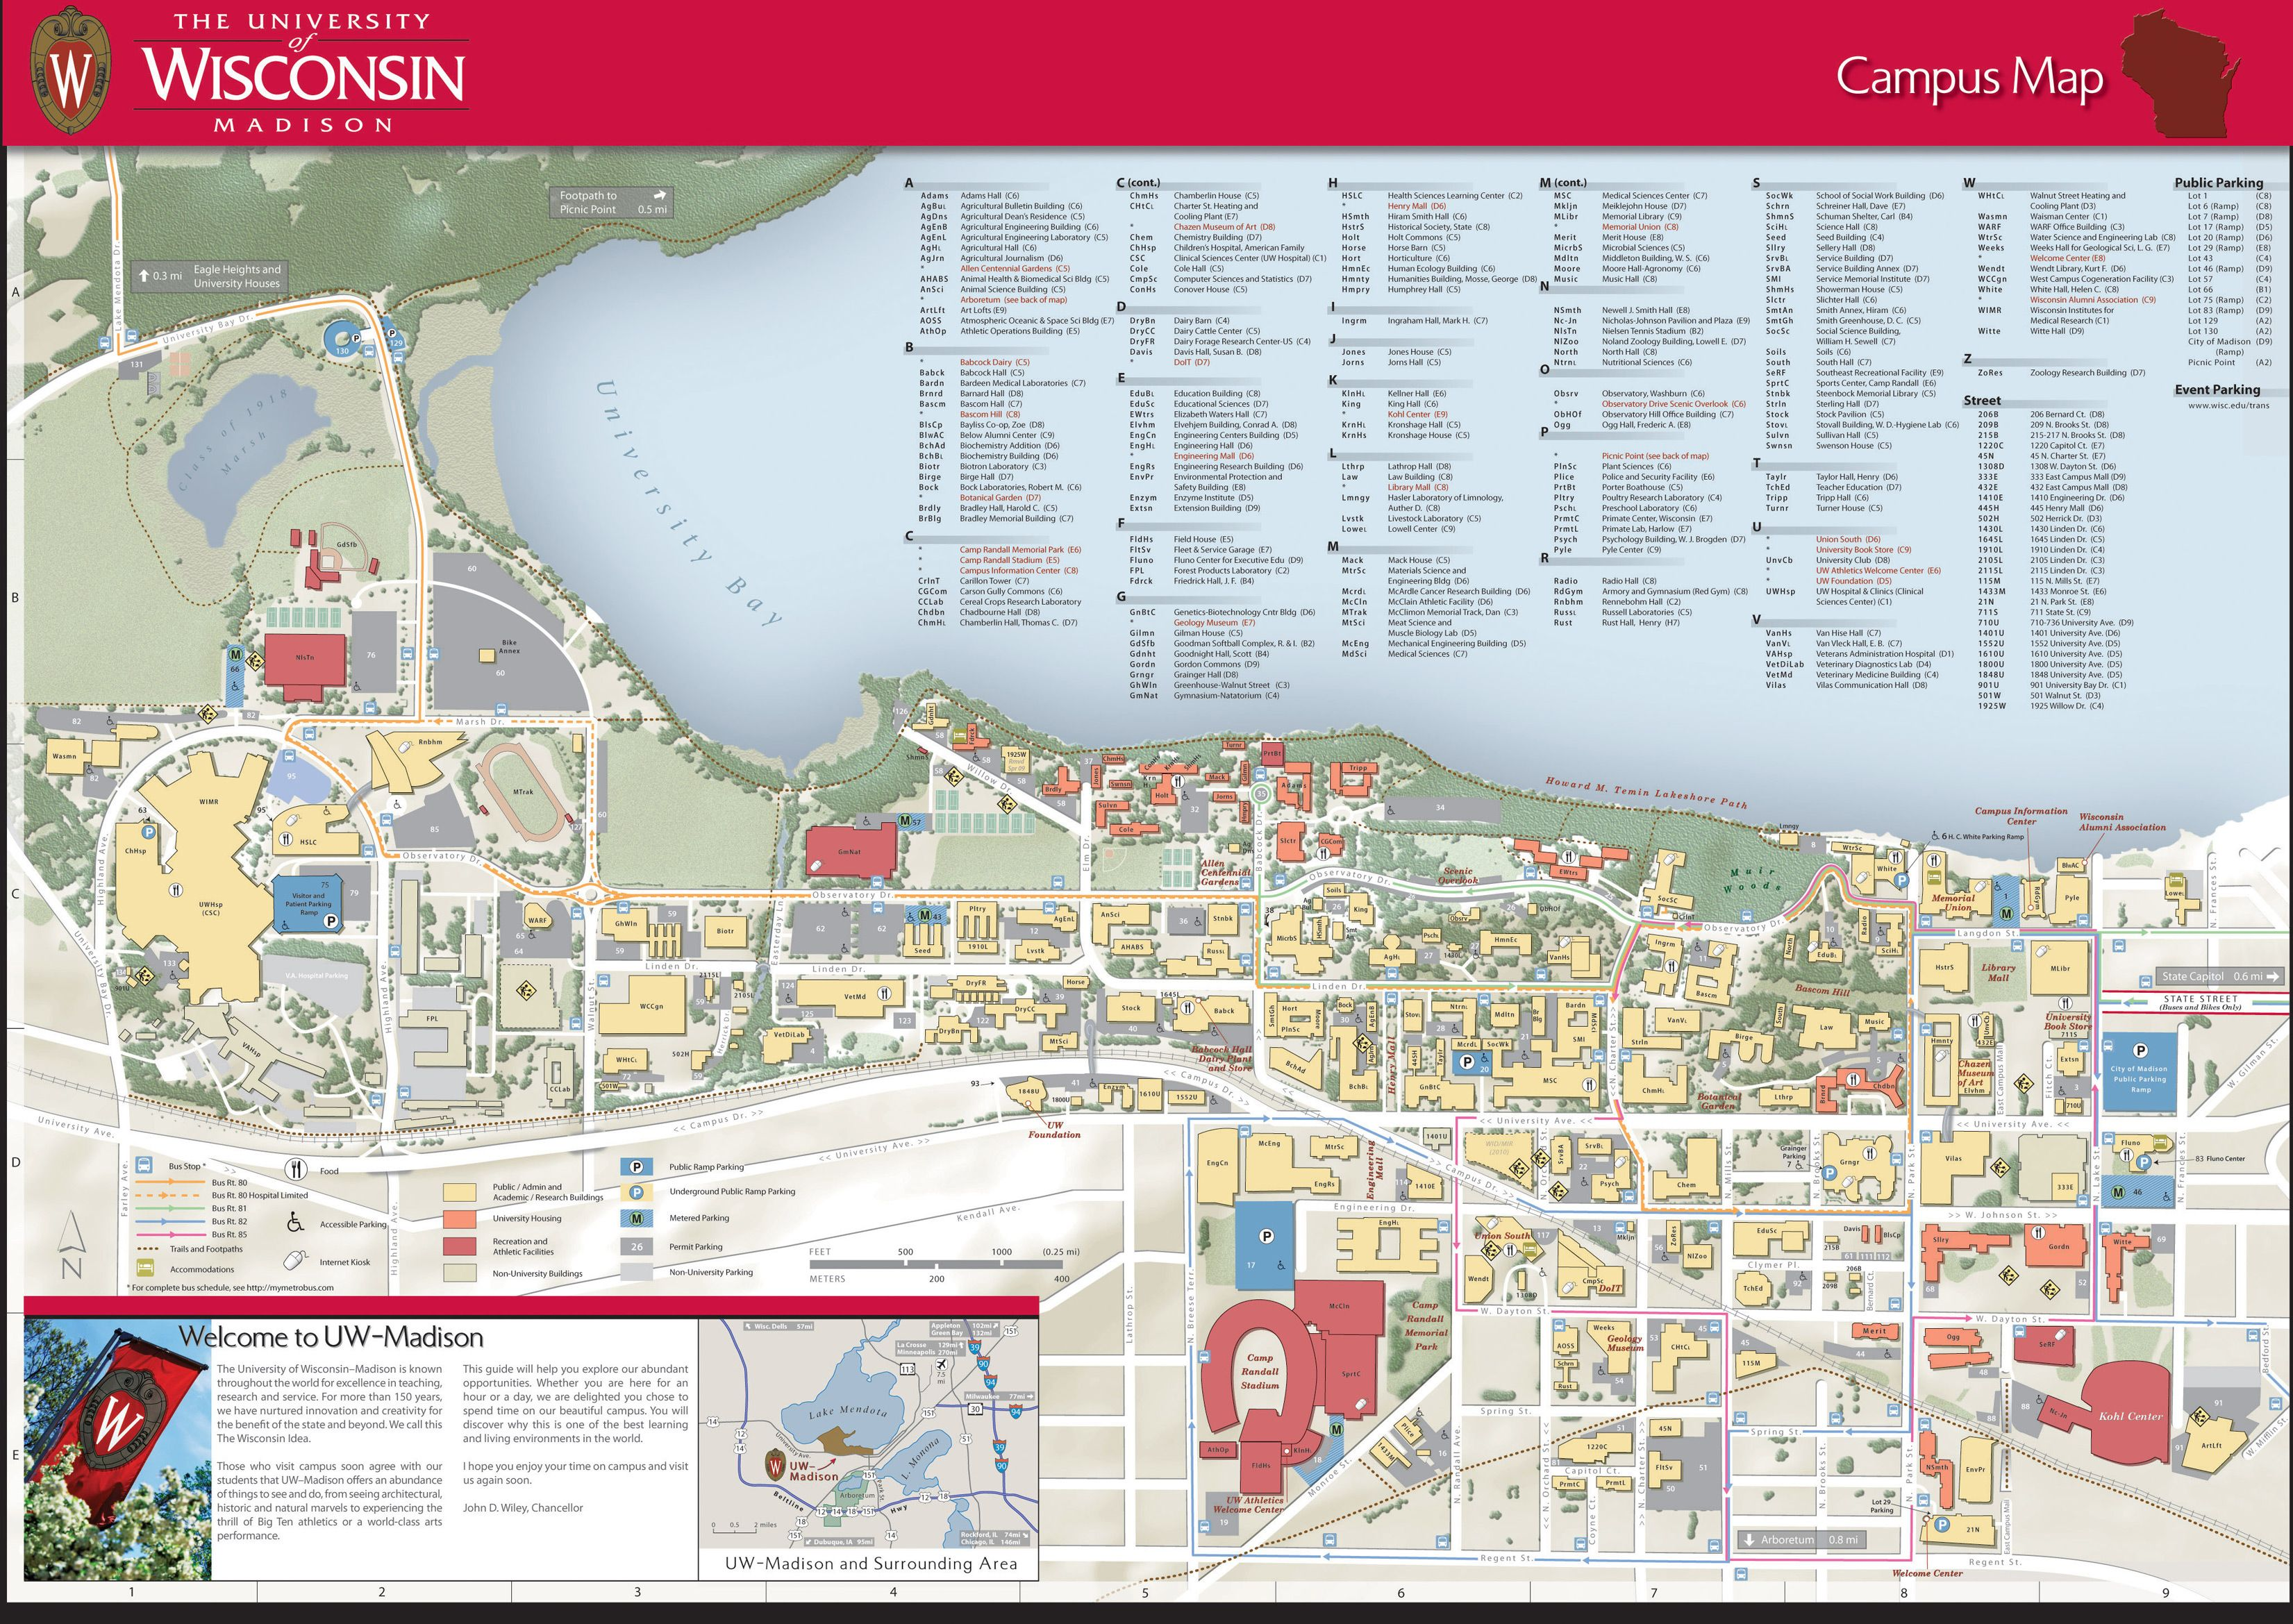 uw madison campus map printable Google Image Result For Http Www Axismaps Com Images Zoomify uw madison campus map printable